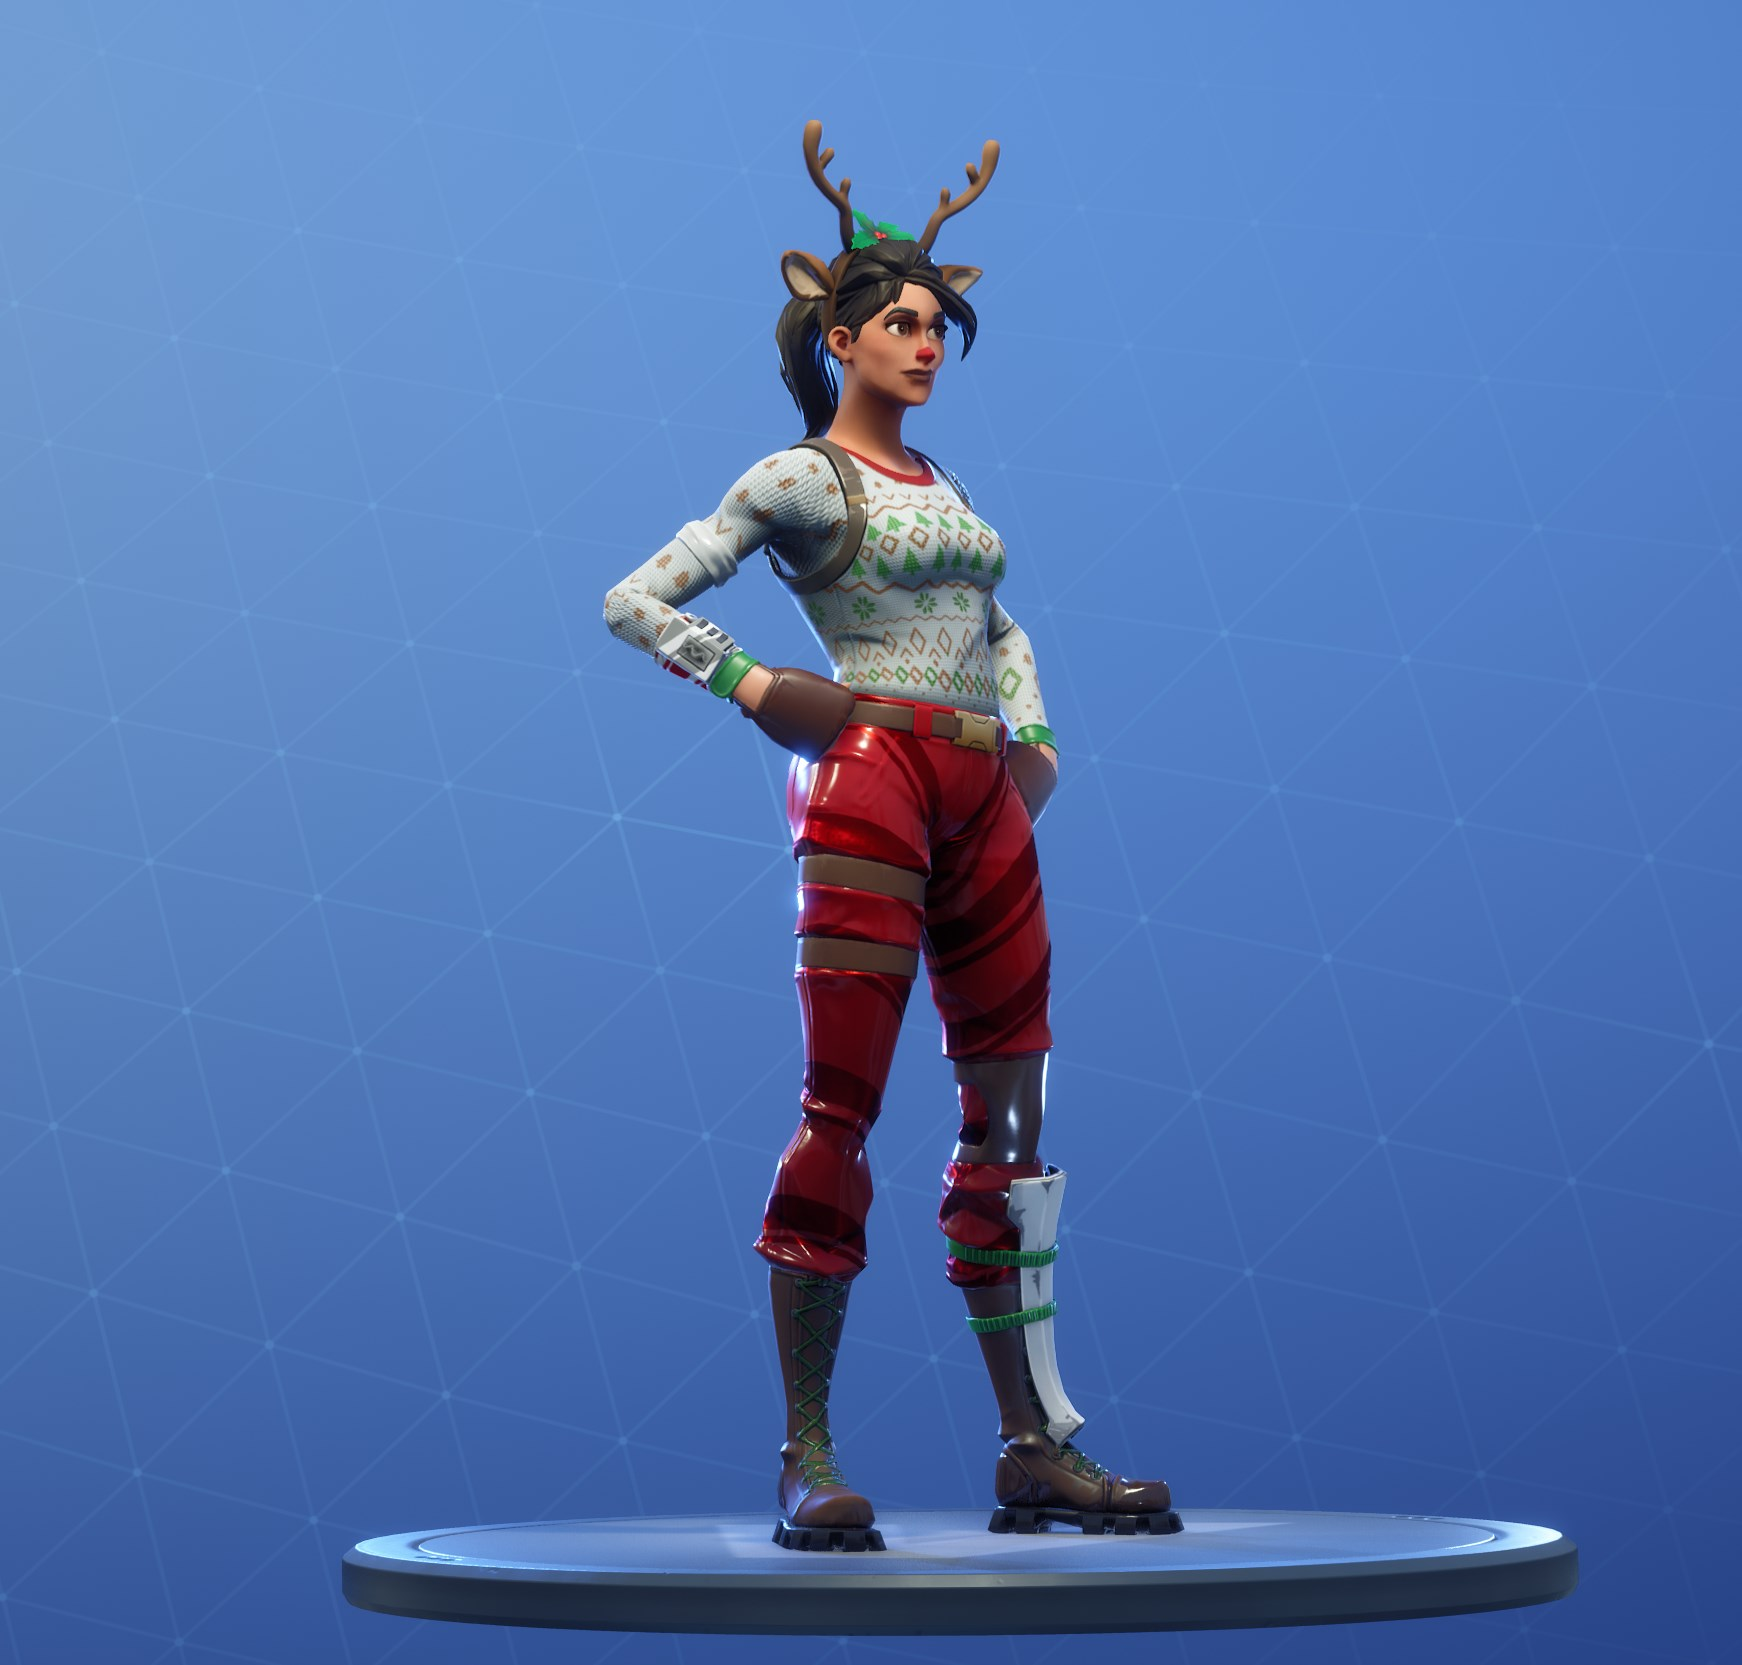 Fortnite Red Nosed Raider Skin Rare Outfit Fortnite Skins